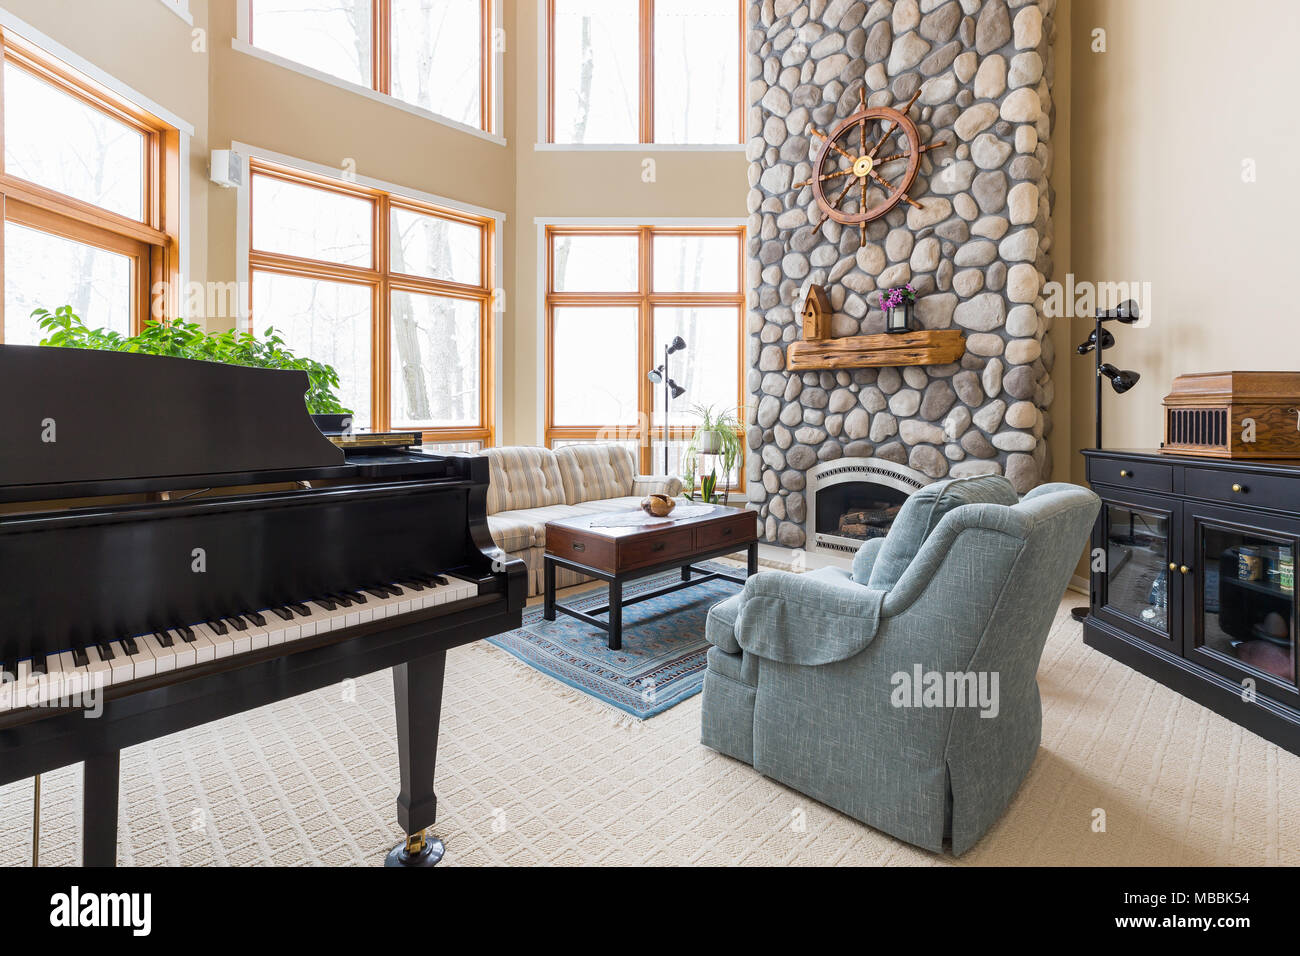 Floor To Ceiling Fireplace Stock Photos Floor To Ceiling